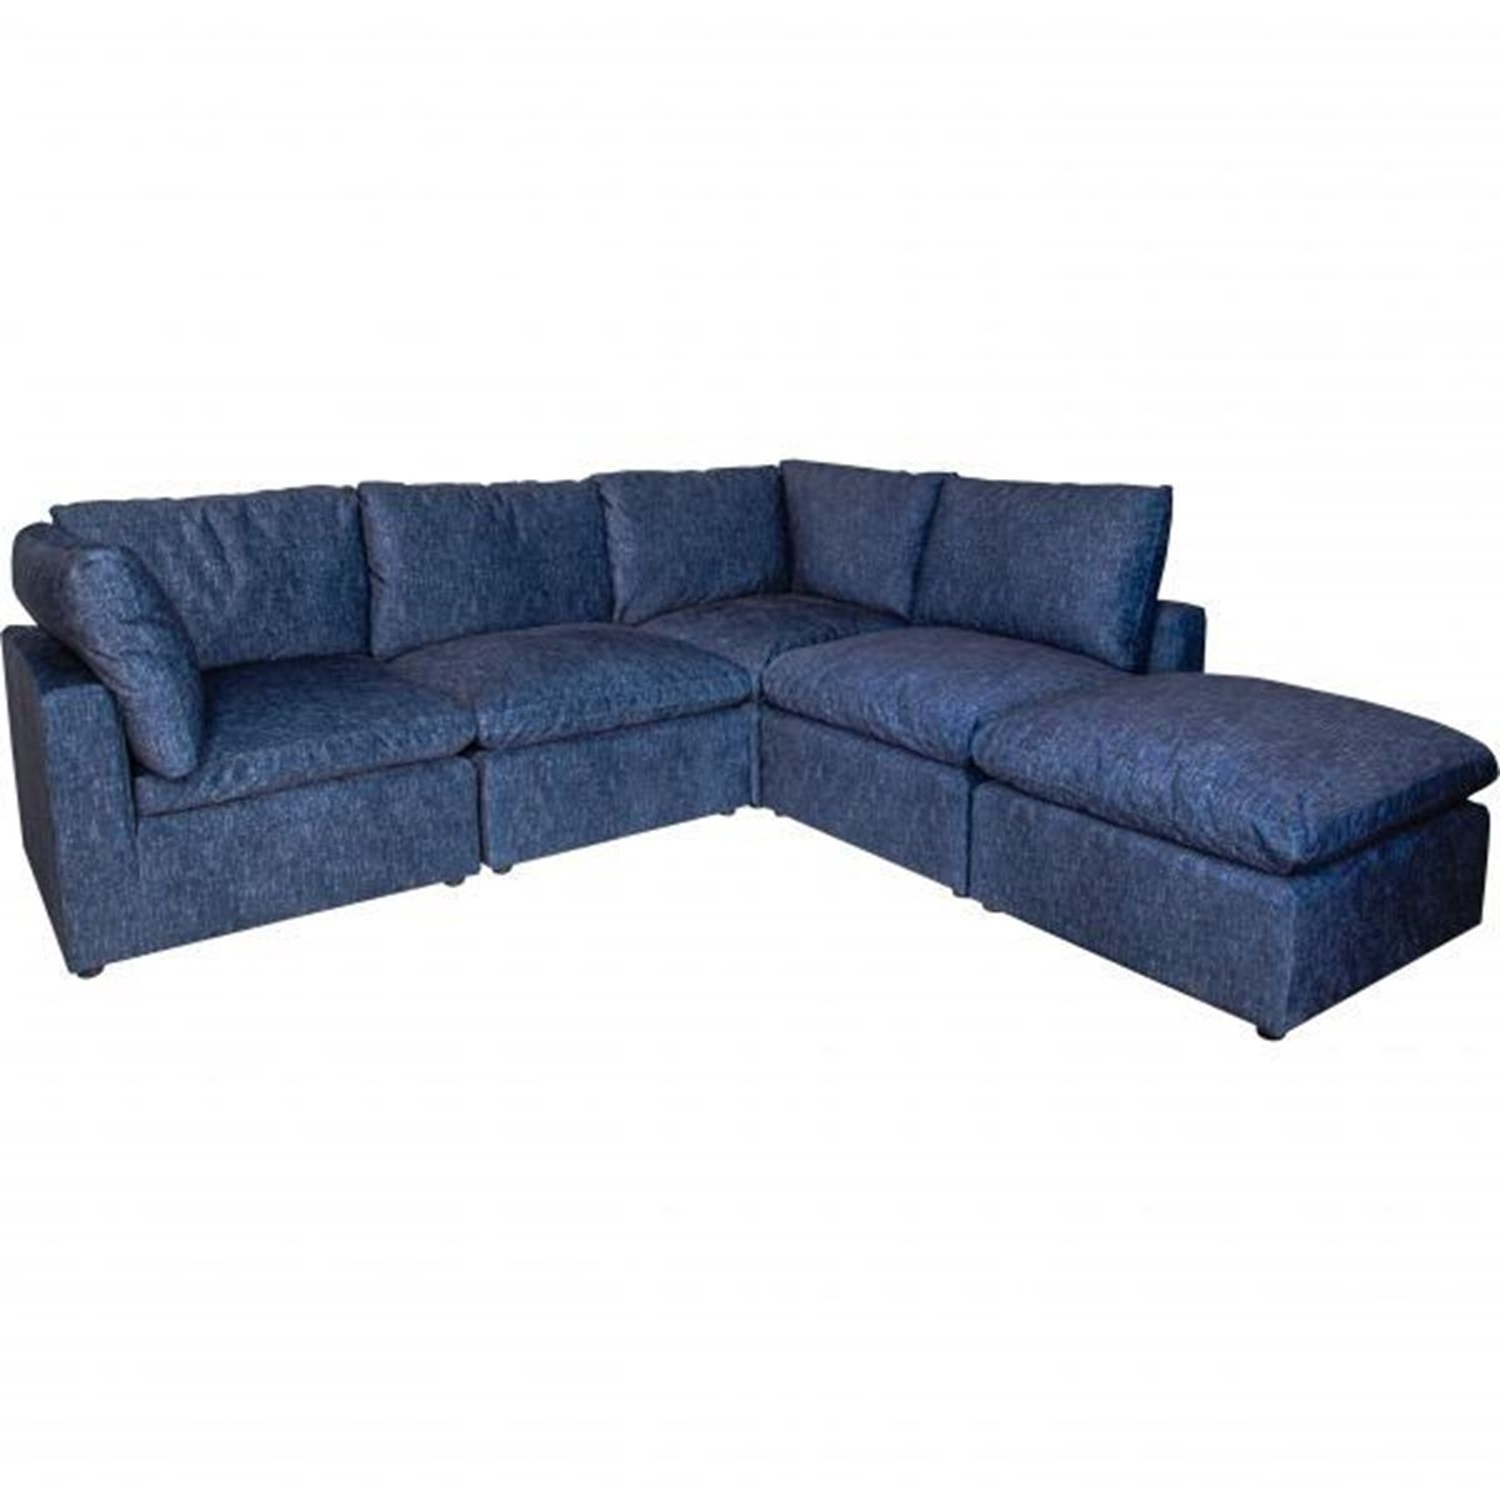 Lush Five Piece Sectional (View 3 of 20)